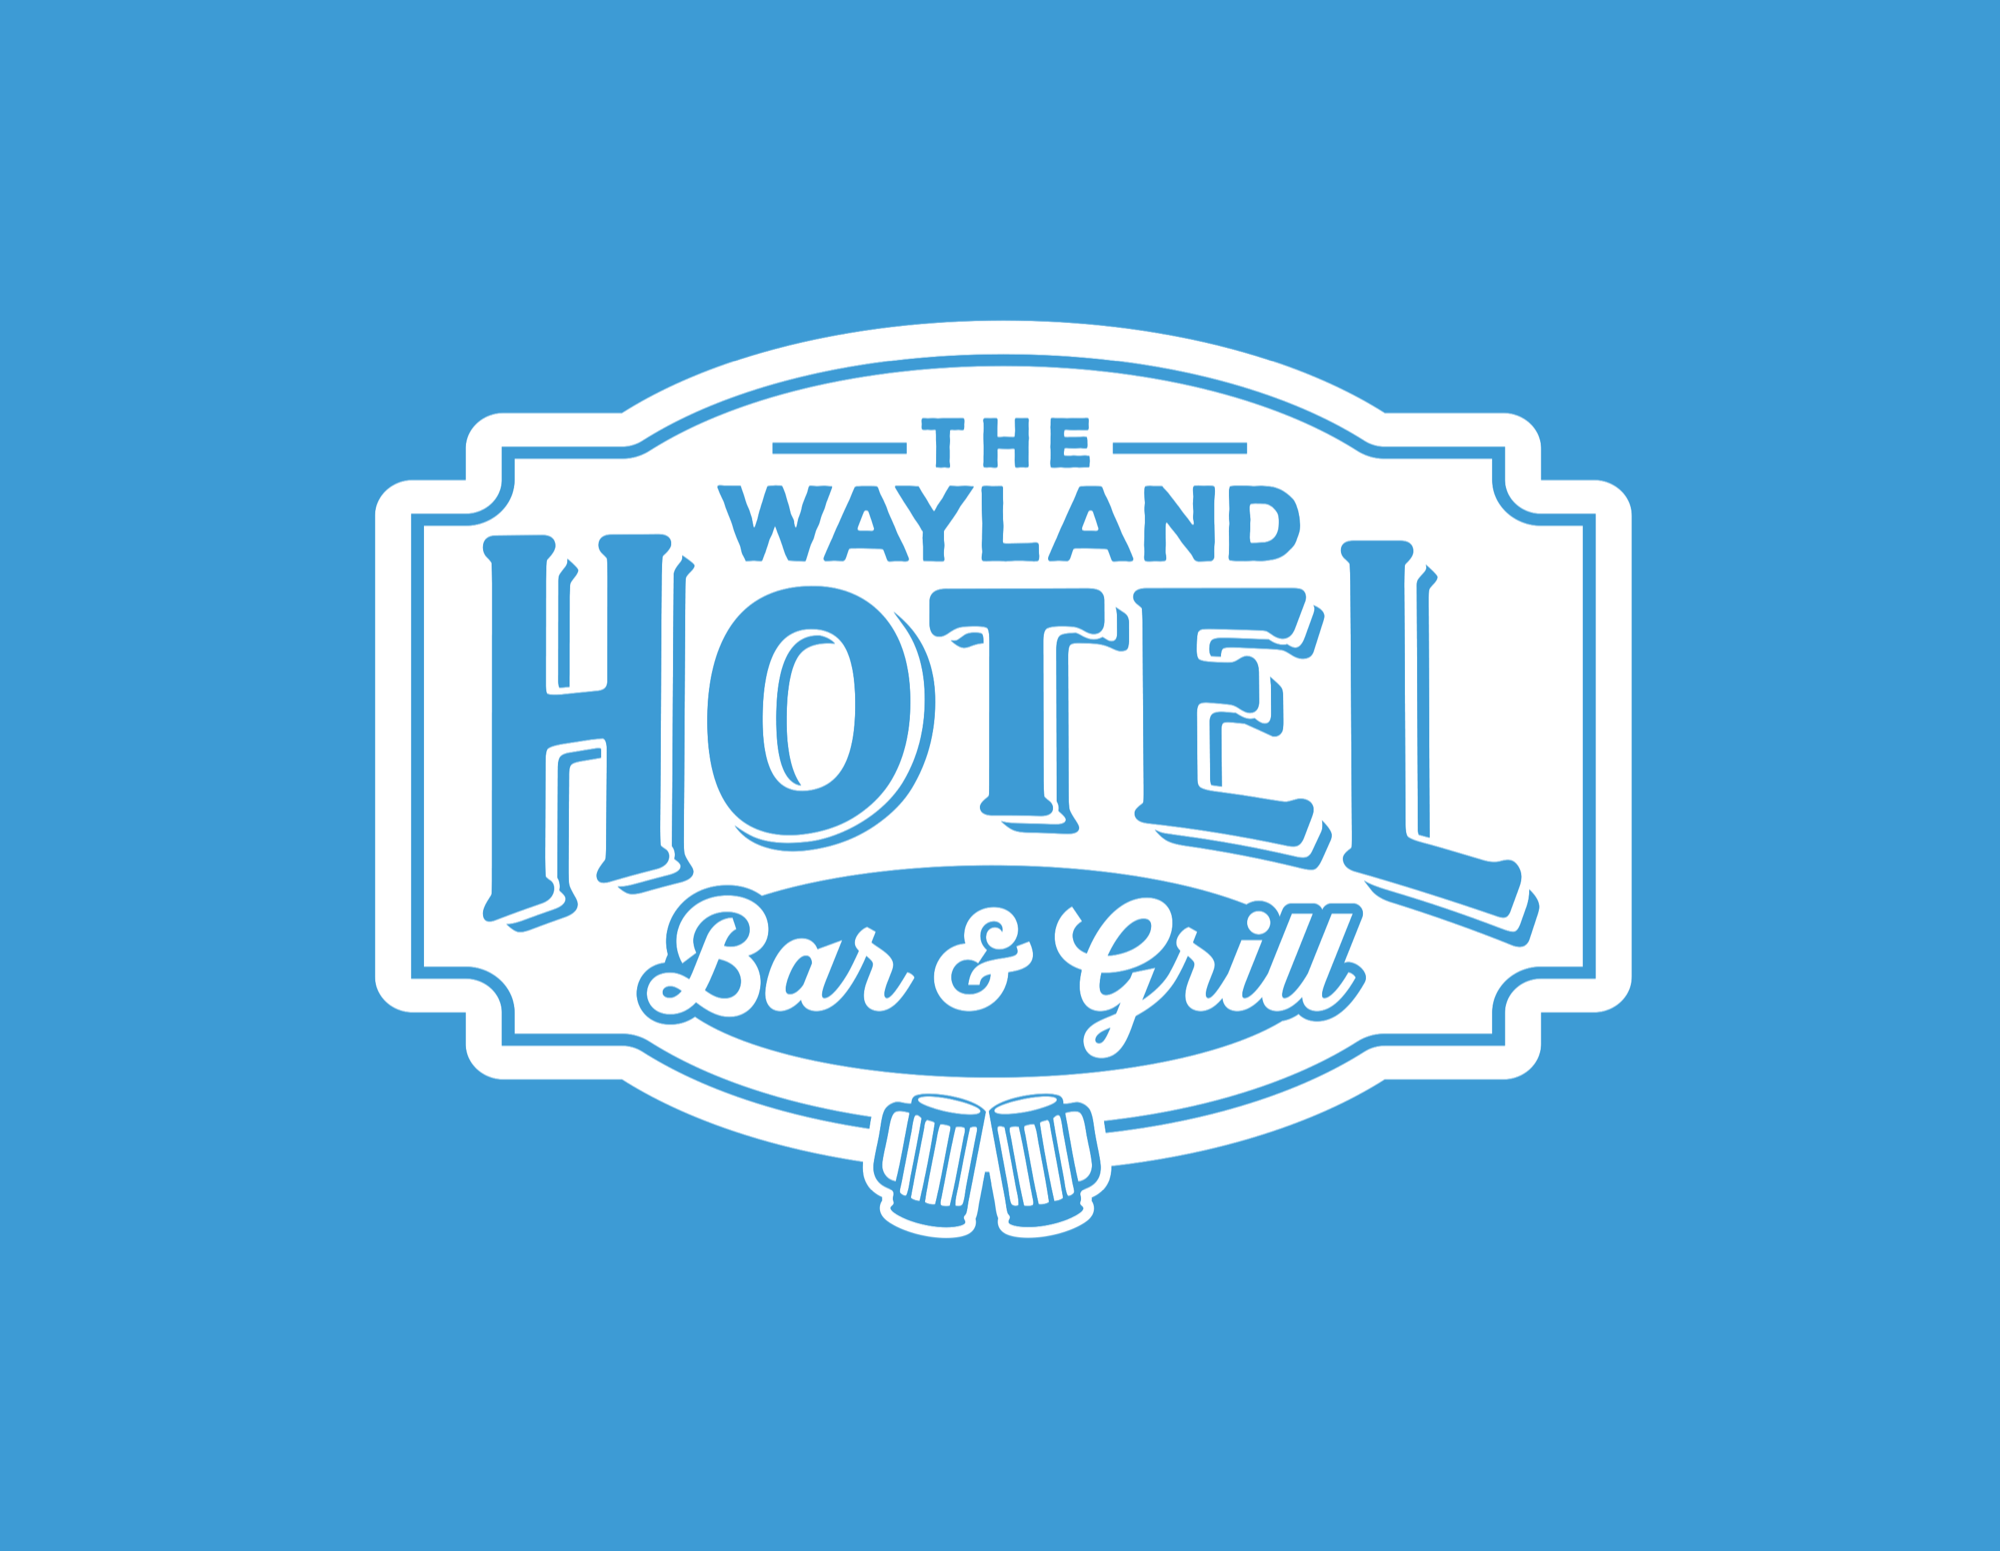 The_Wayland_Hotel_Bar&Grill_Logos-2